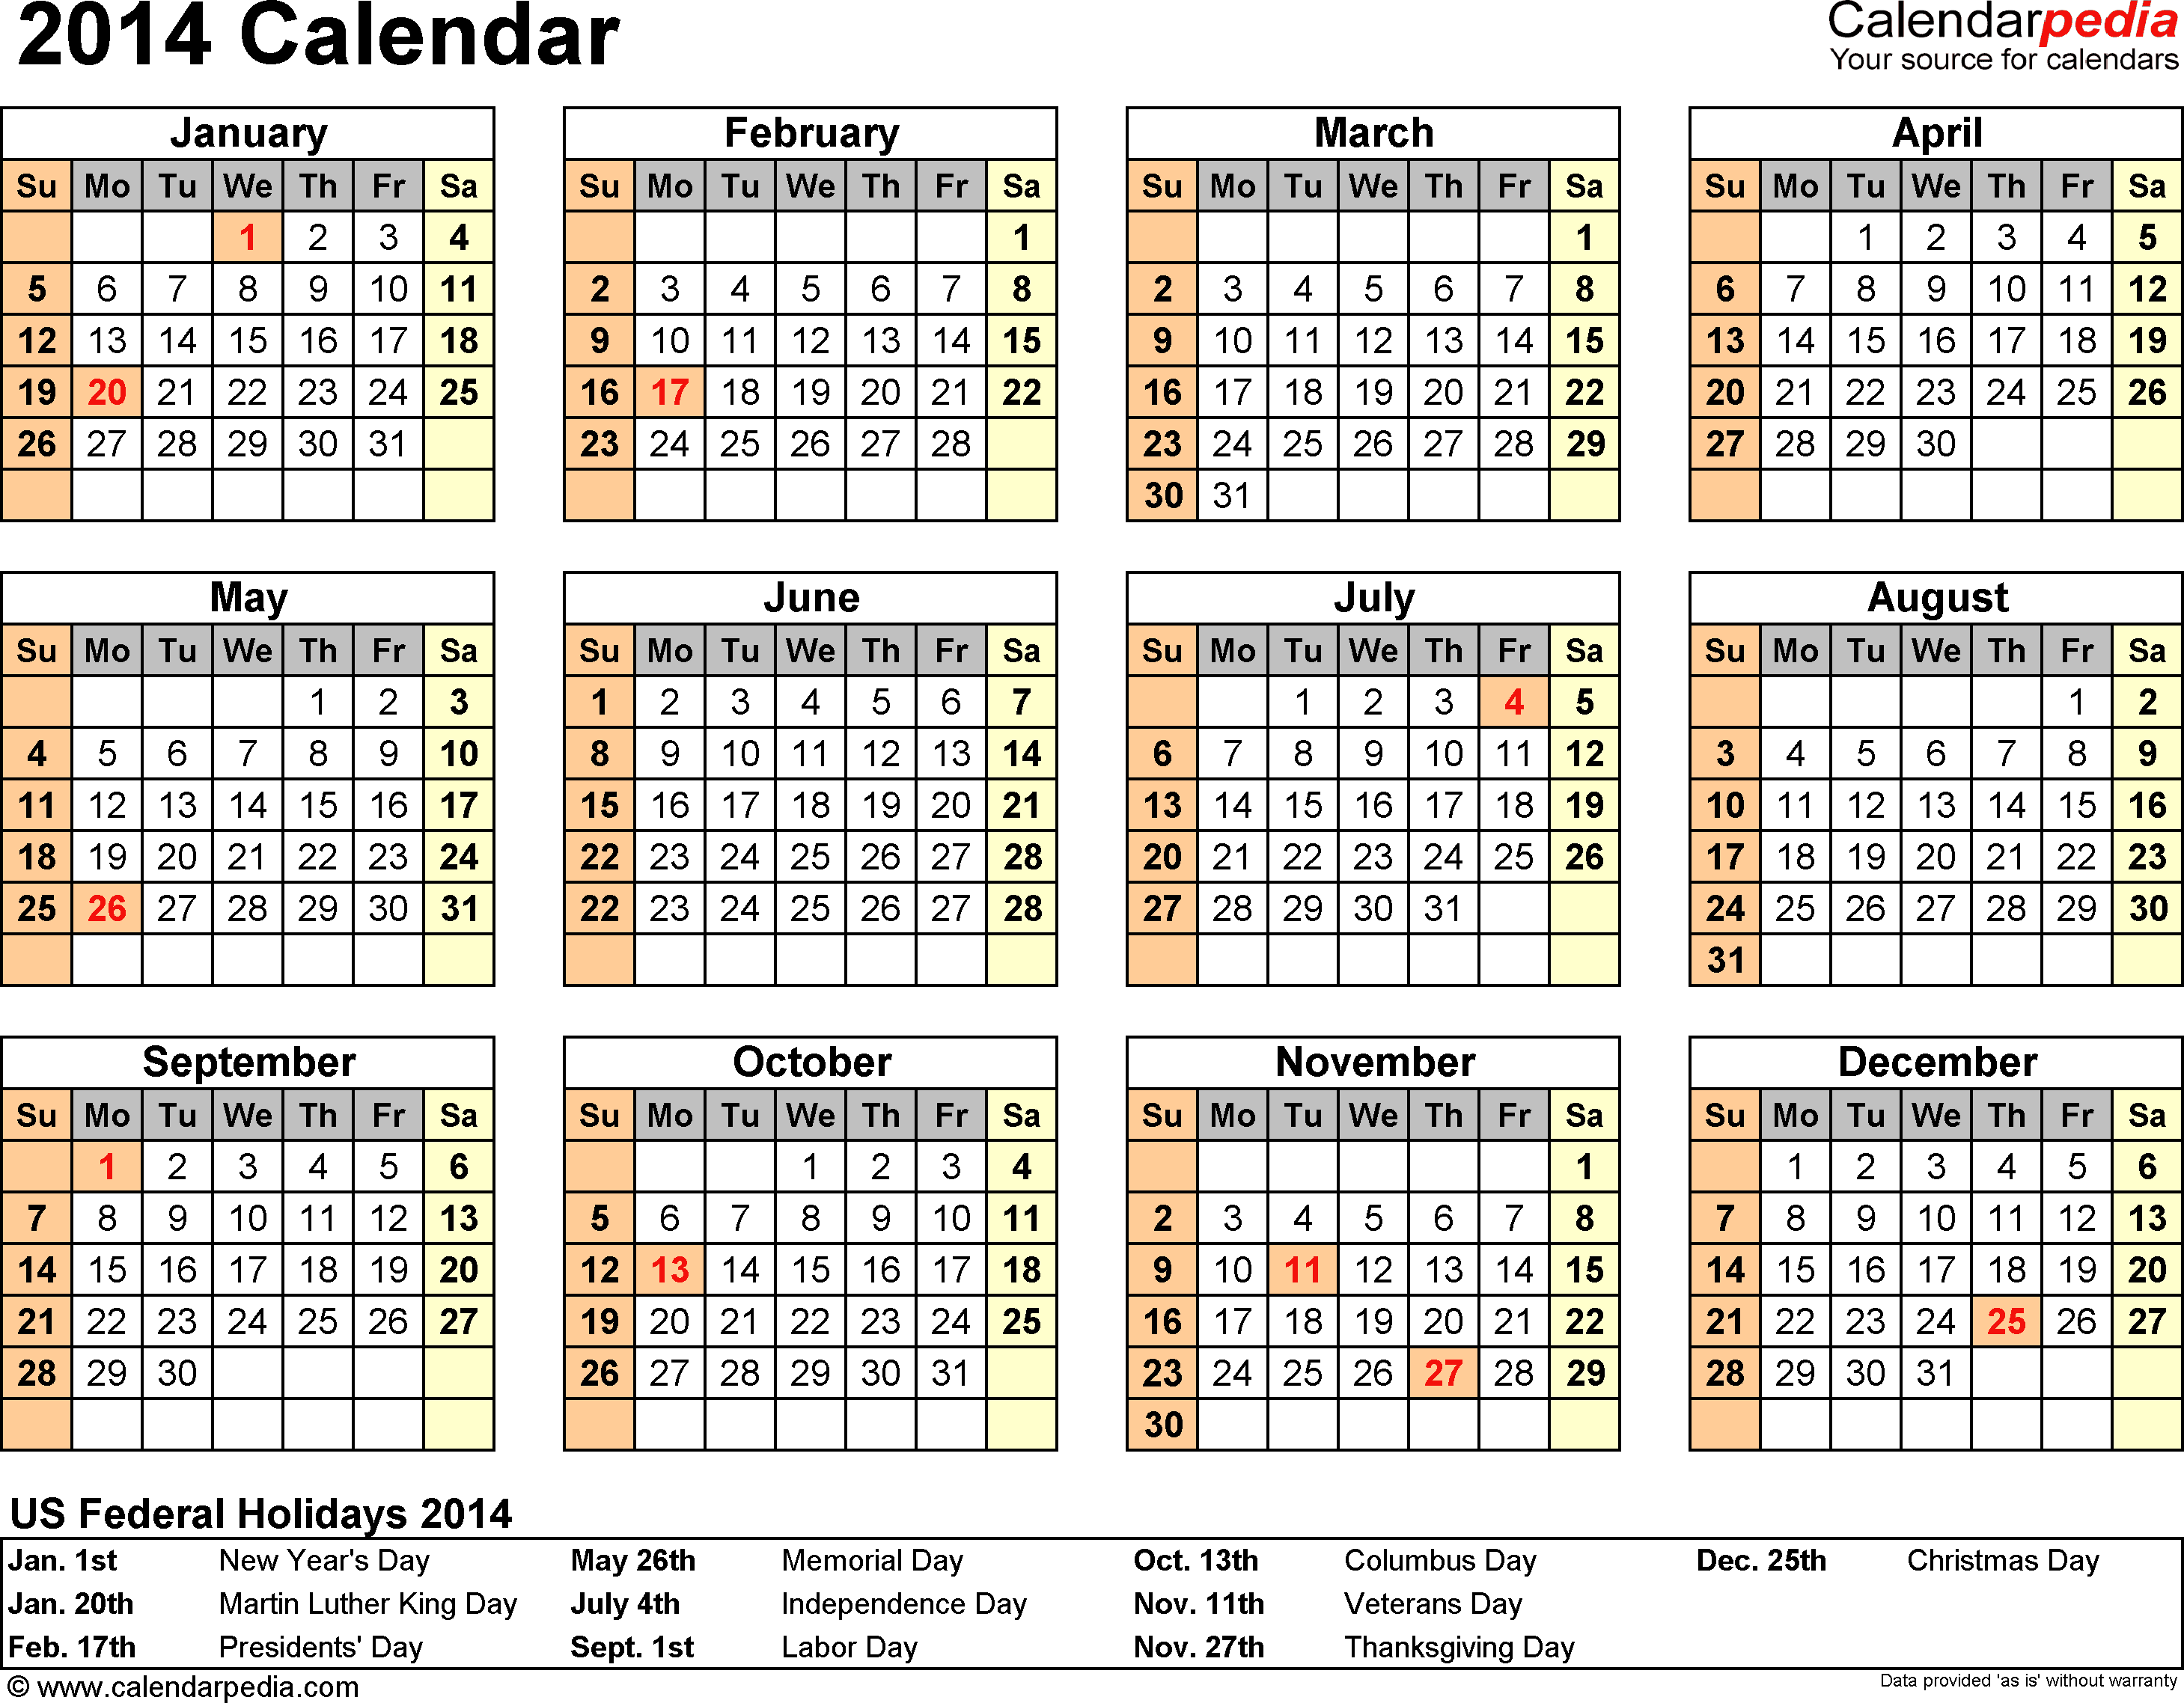 Download Template 8: 2014 Calendar for PDF, year at a glance, 1 page